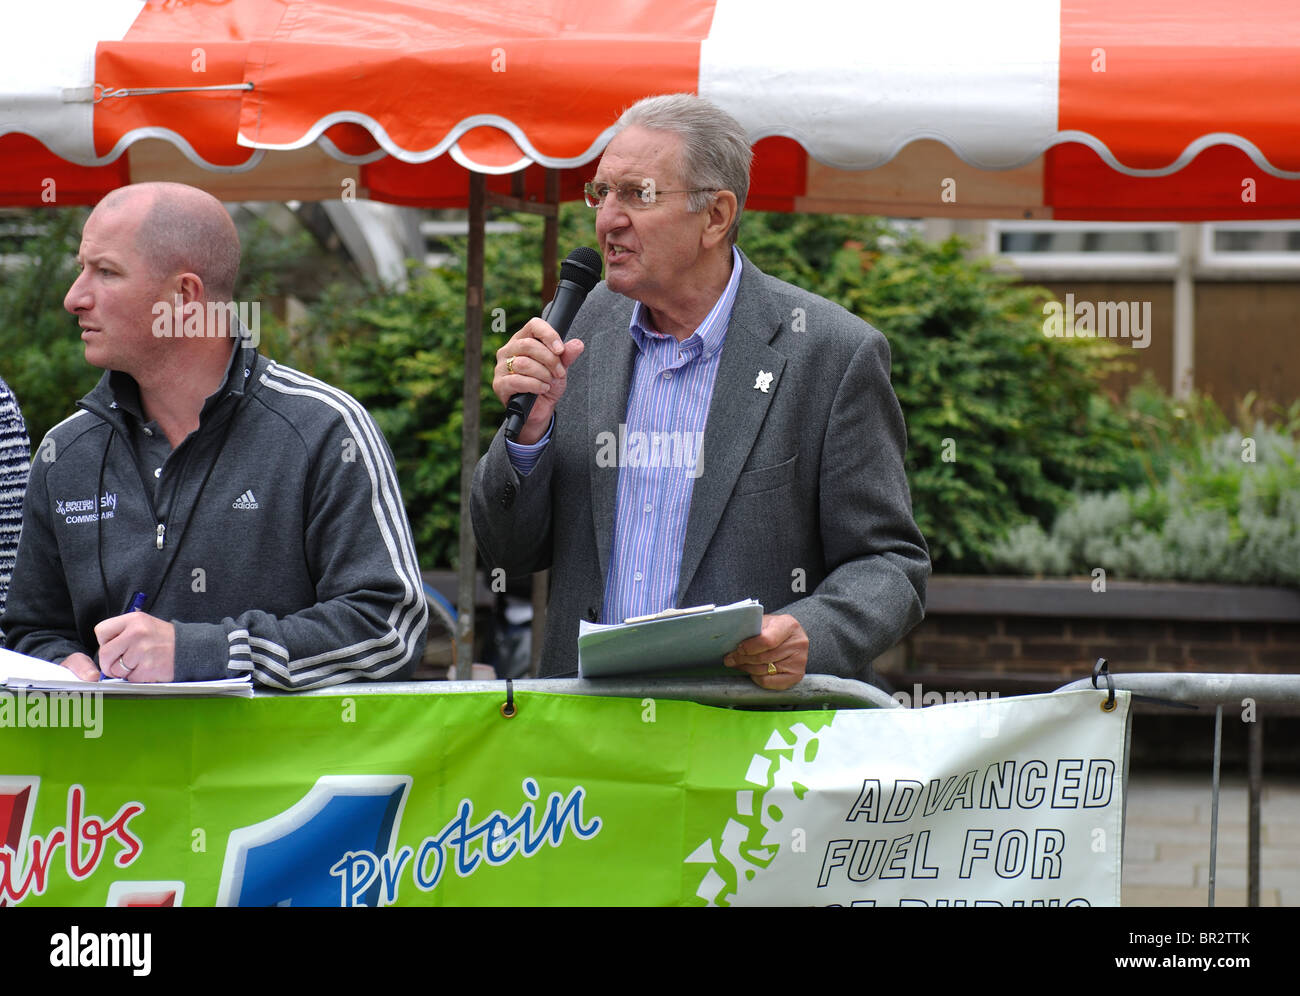 Hugh Porter commentating at Warwick Town Centre Cycle Races, 2010. - Stock Image